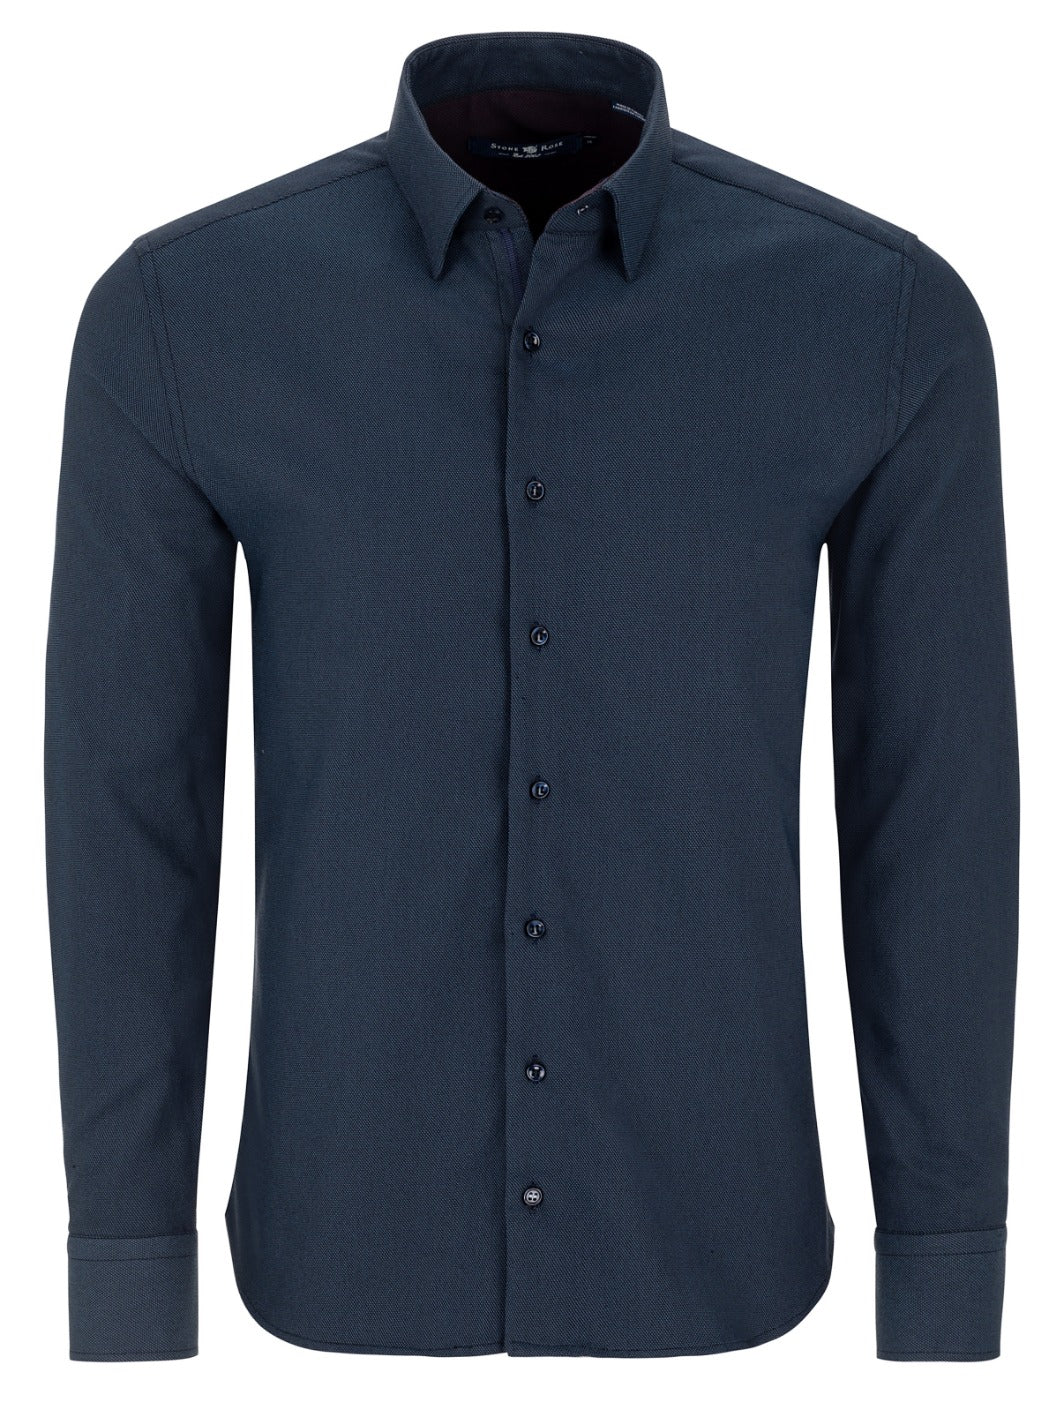 Blue Dry Touch Jacquard Long Sleeve Shirt